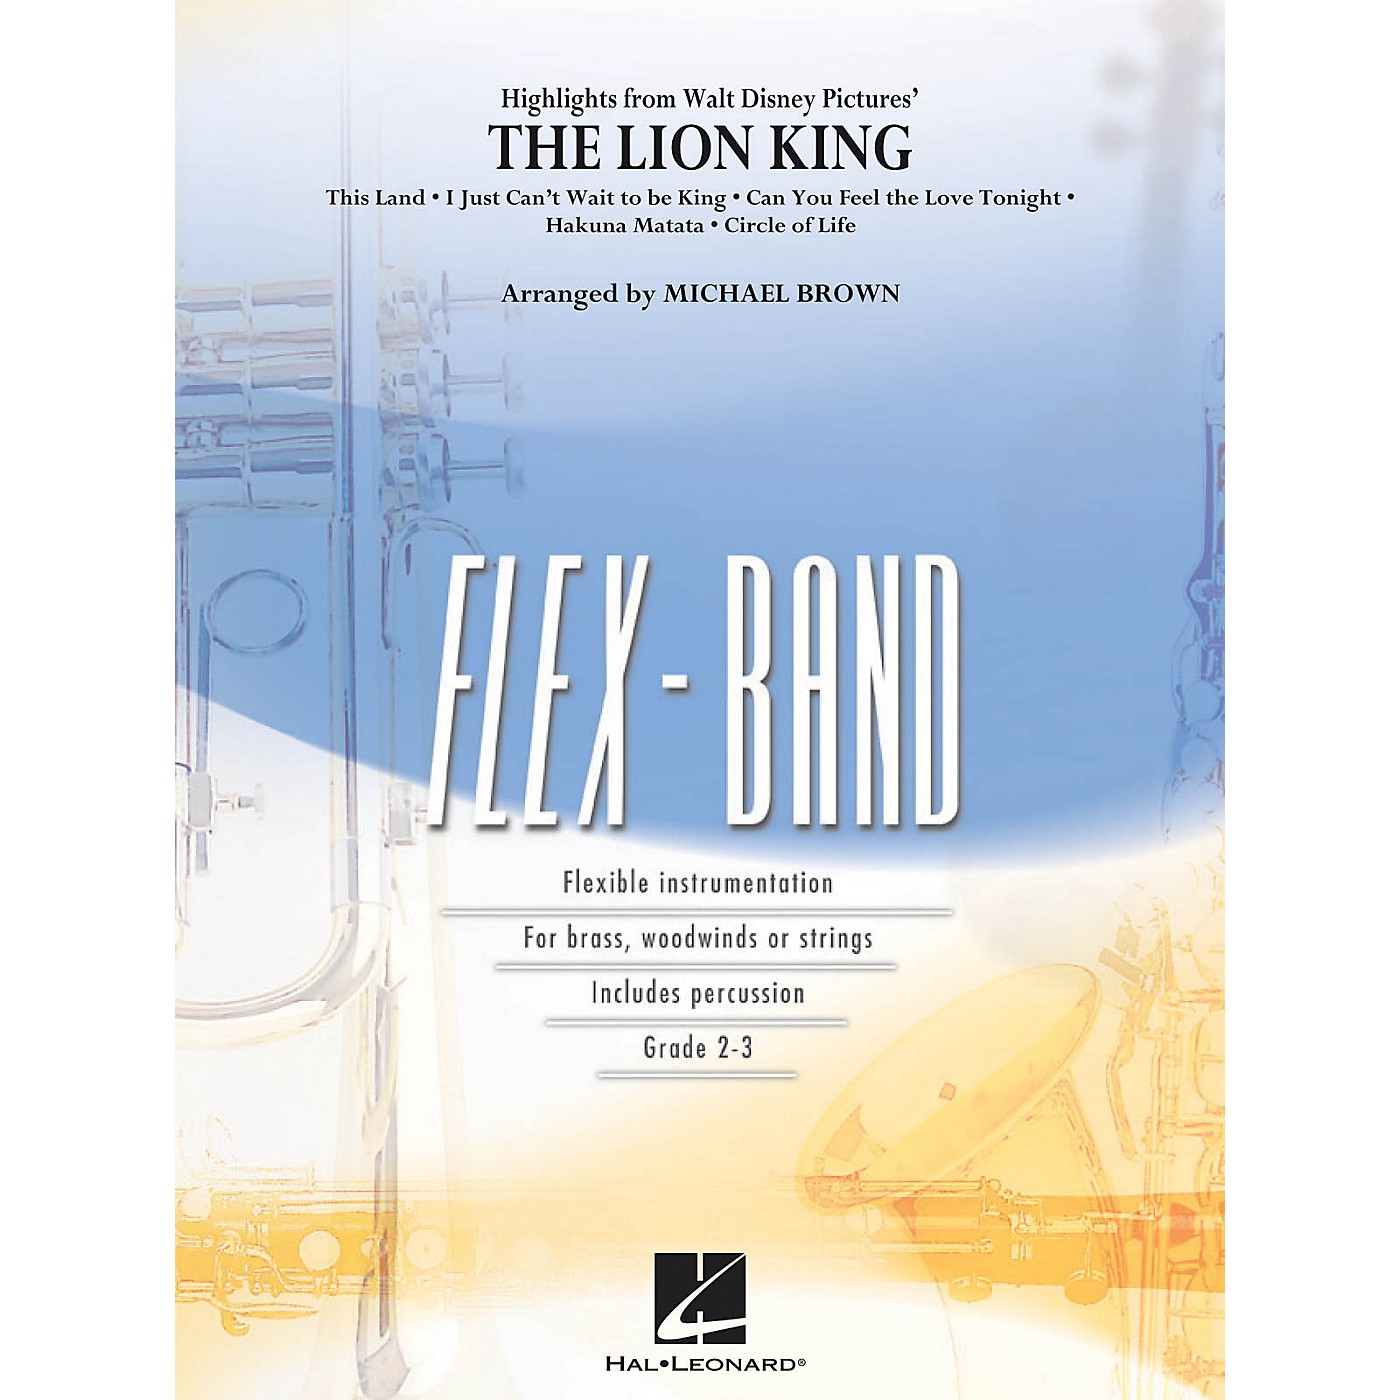 Hal Leonard Highlights from The Lion King Concert Band Level 2-3 Arranged by Michael Brown thumbnail